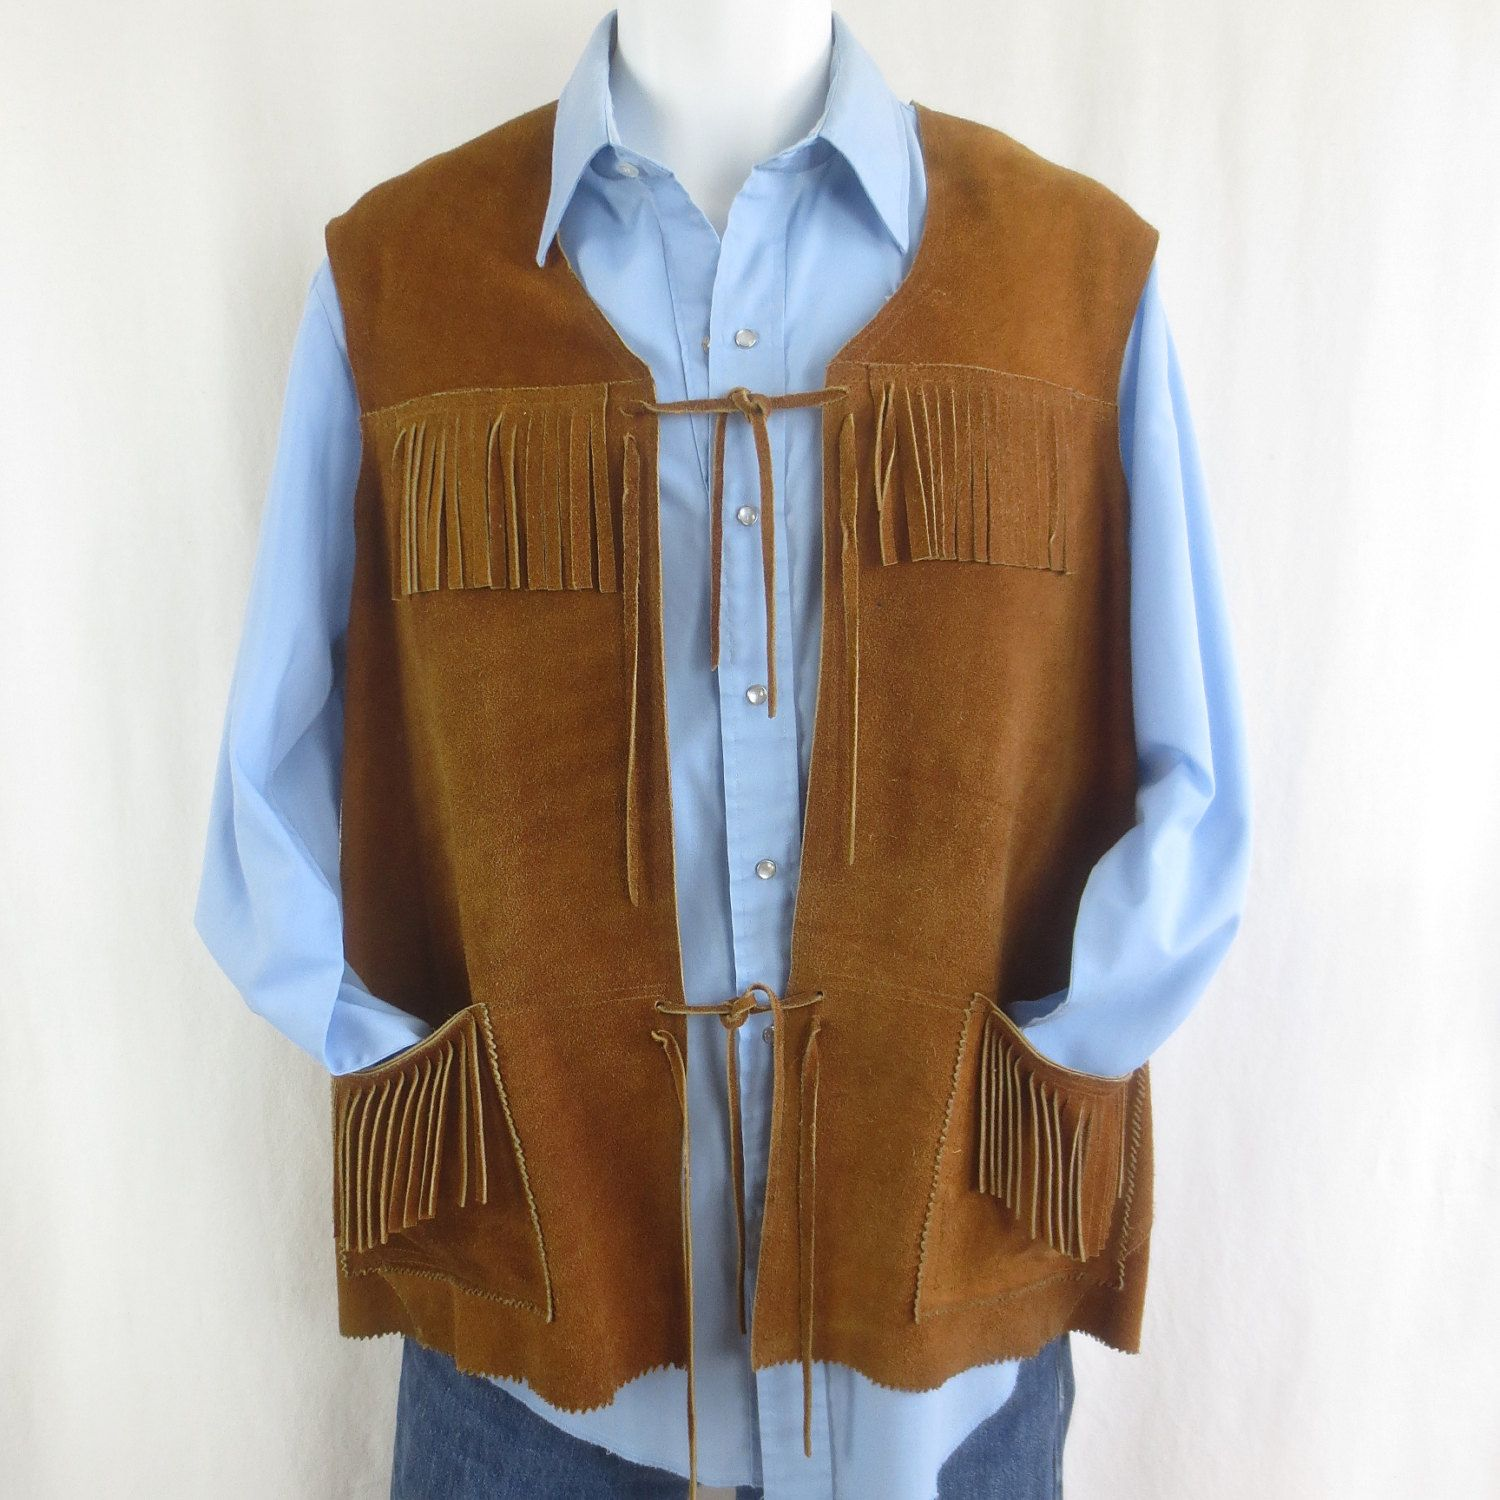 Vintage !970u0027s Russet Suede Fringed Leather Vest - Reenactment Costume Western Cowboy Sz L by delilahsdeluxe on Etsy : cowboy vest costume  - Germanpascual.Com